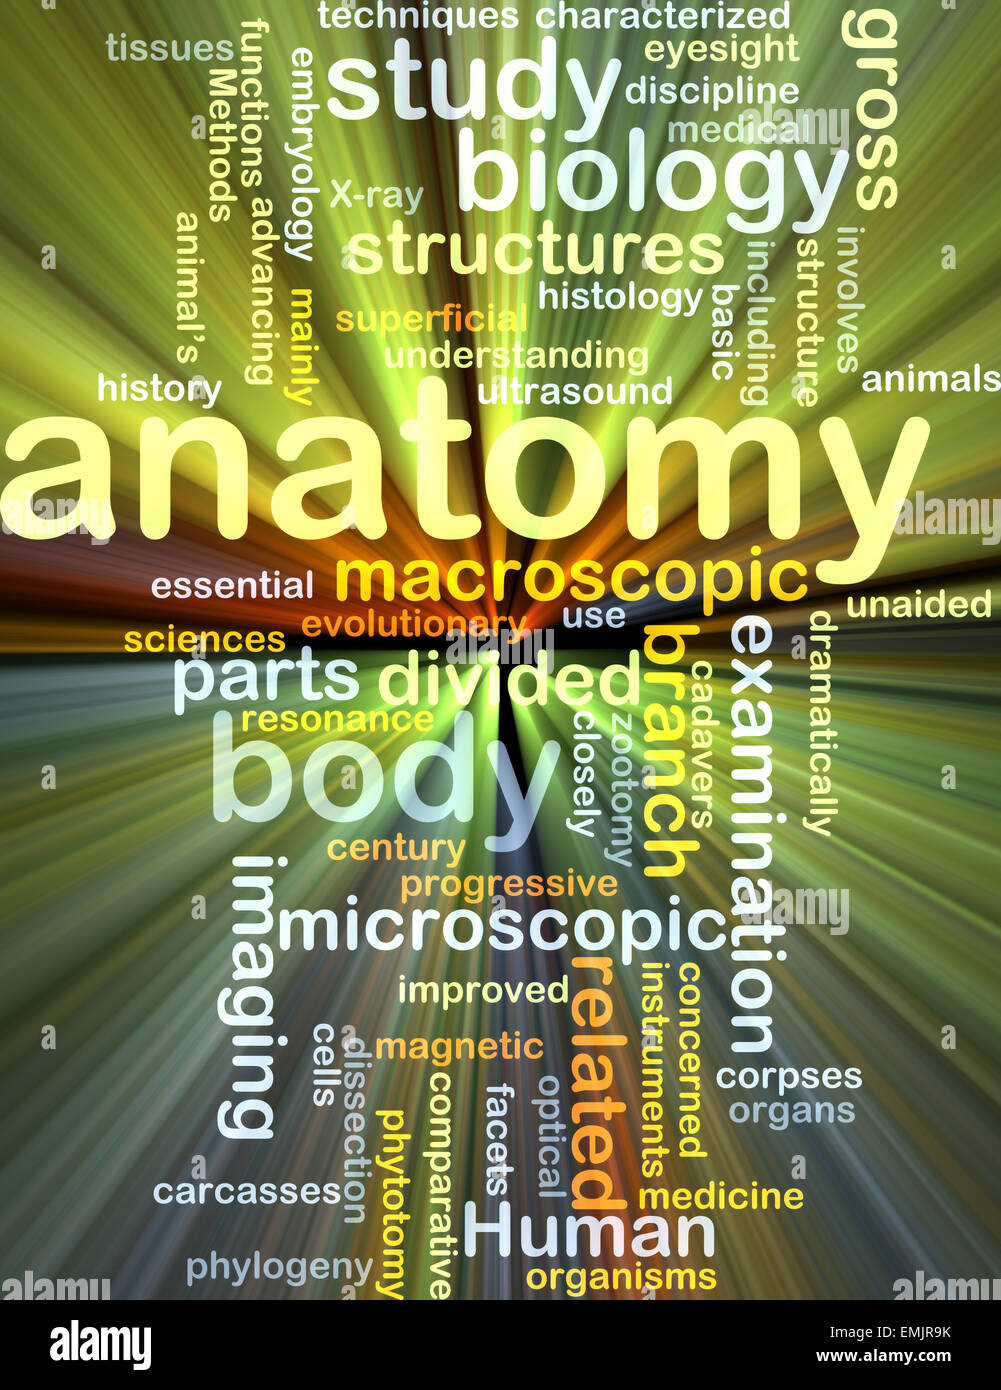 Anatomy Word Cloud Concept Stock Photos Anatomy Word Cloud Concept